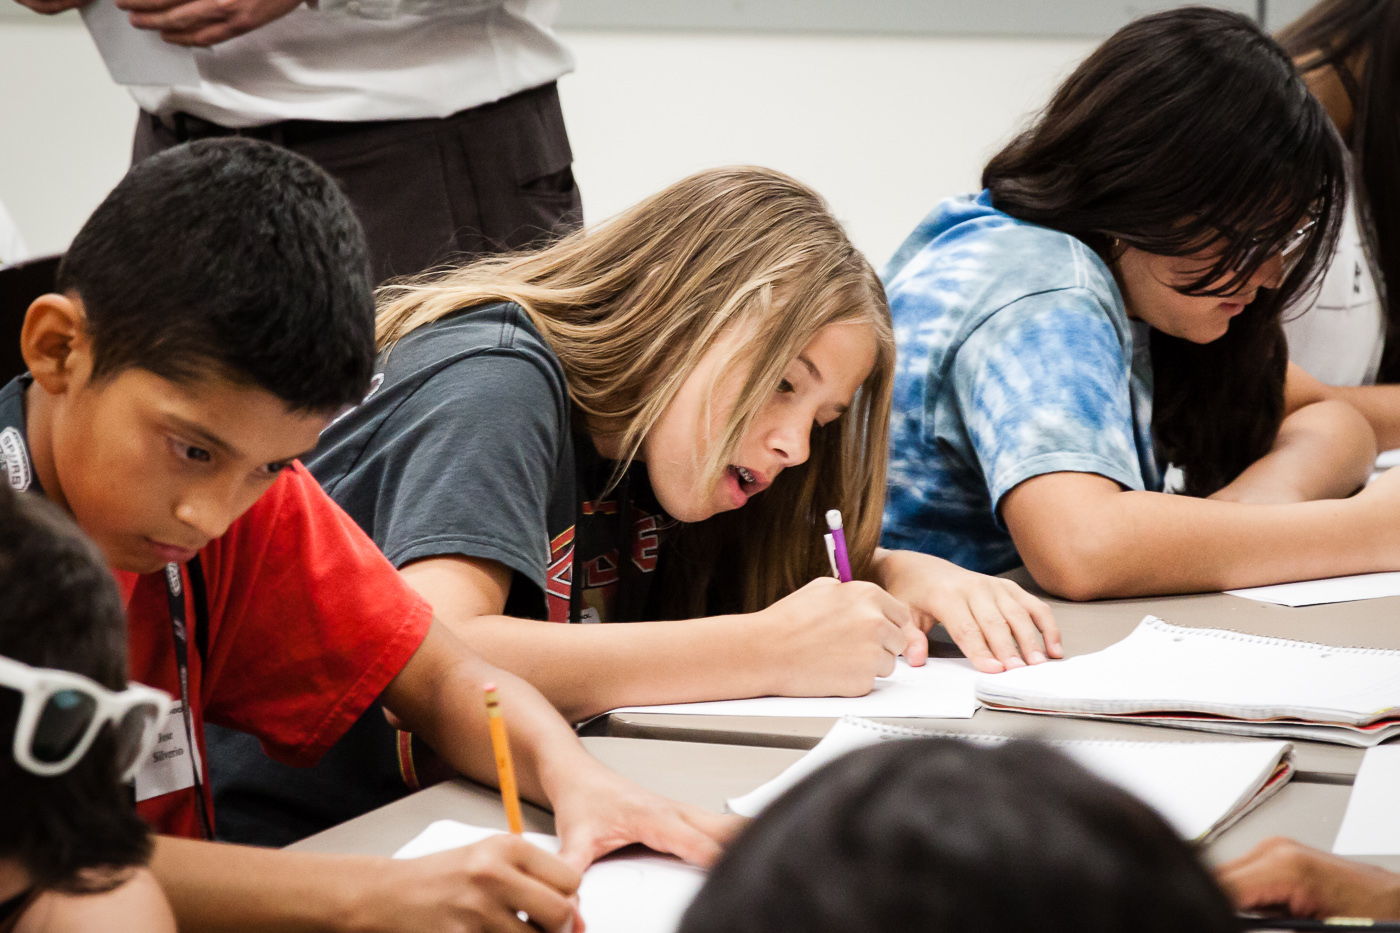 Students Writing On Paper In Classroom